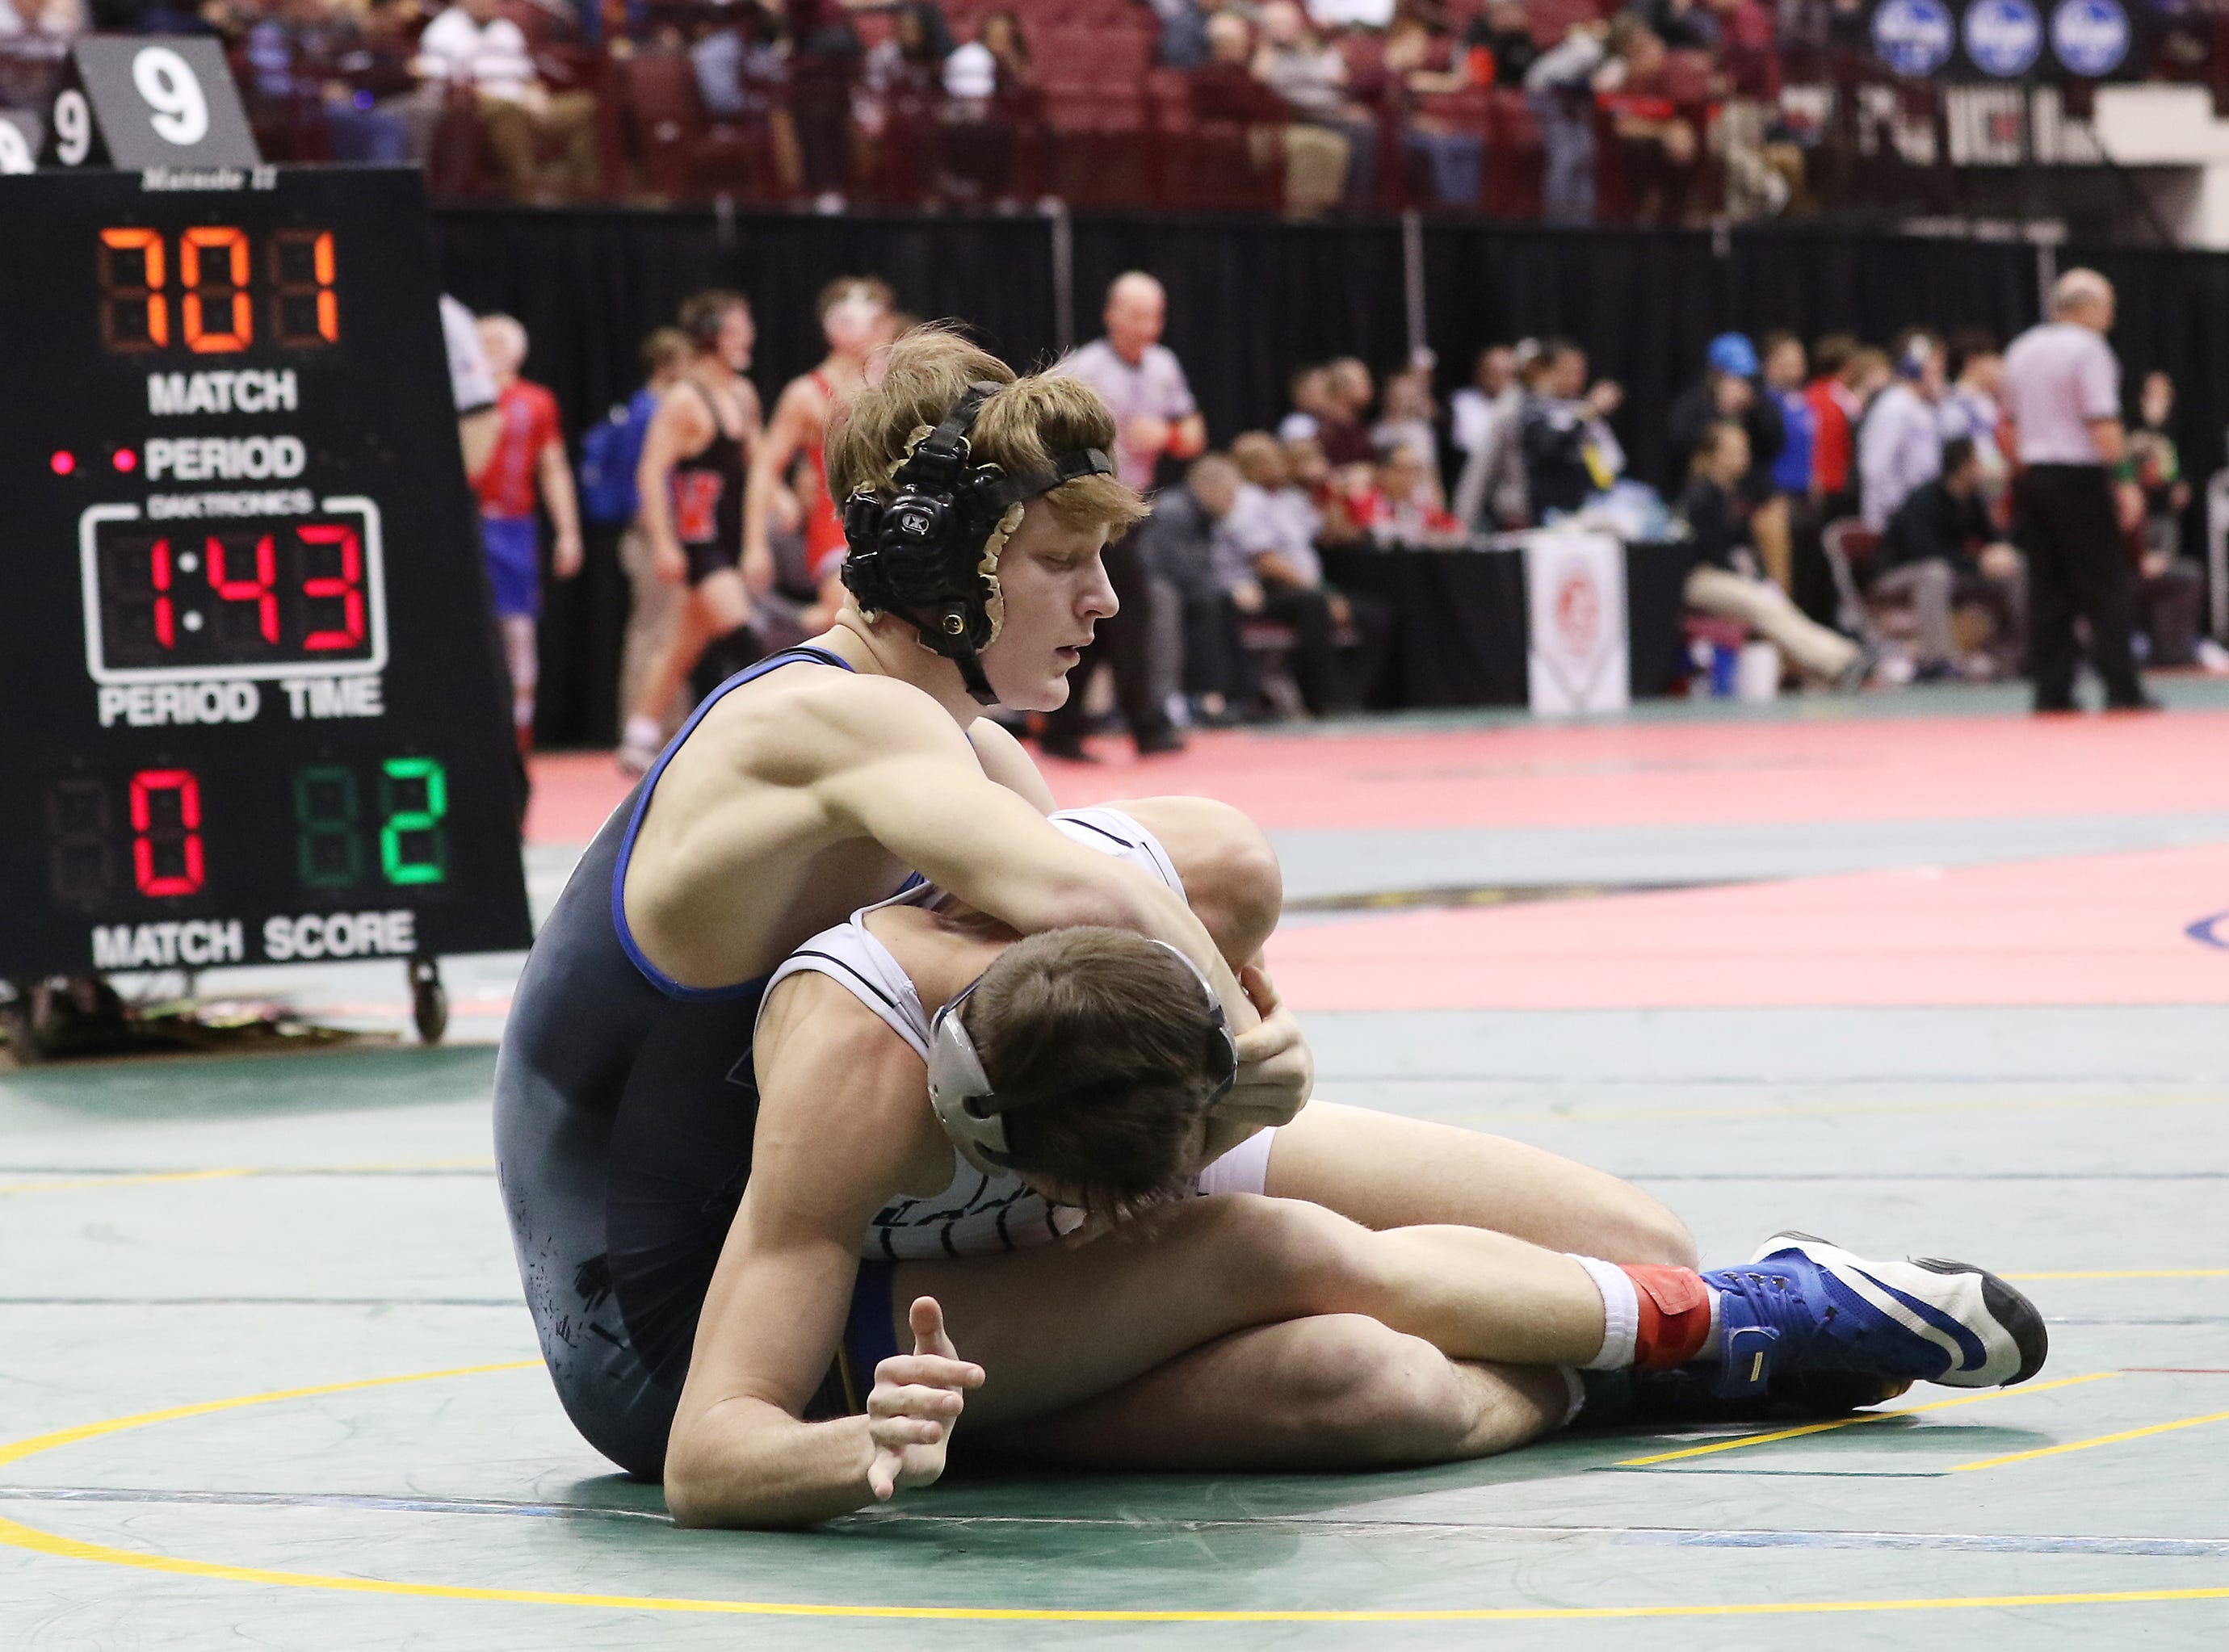 West Muskingum's Andrew Knaup wrestles in Blanchester's Clayton Schirmer in the 152 pound Division III consolations at the state wrestling tournament on Friday.